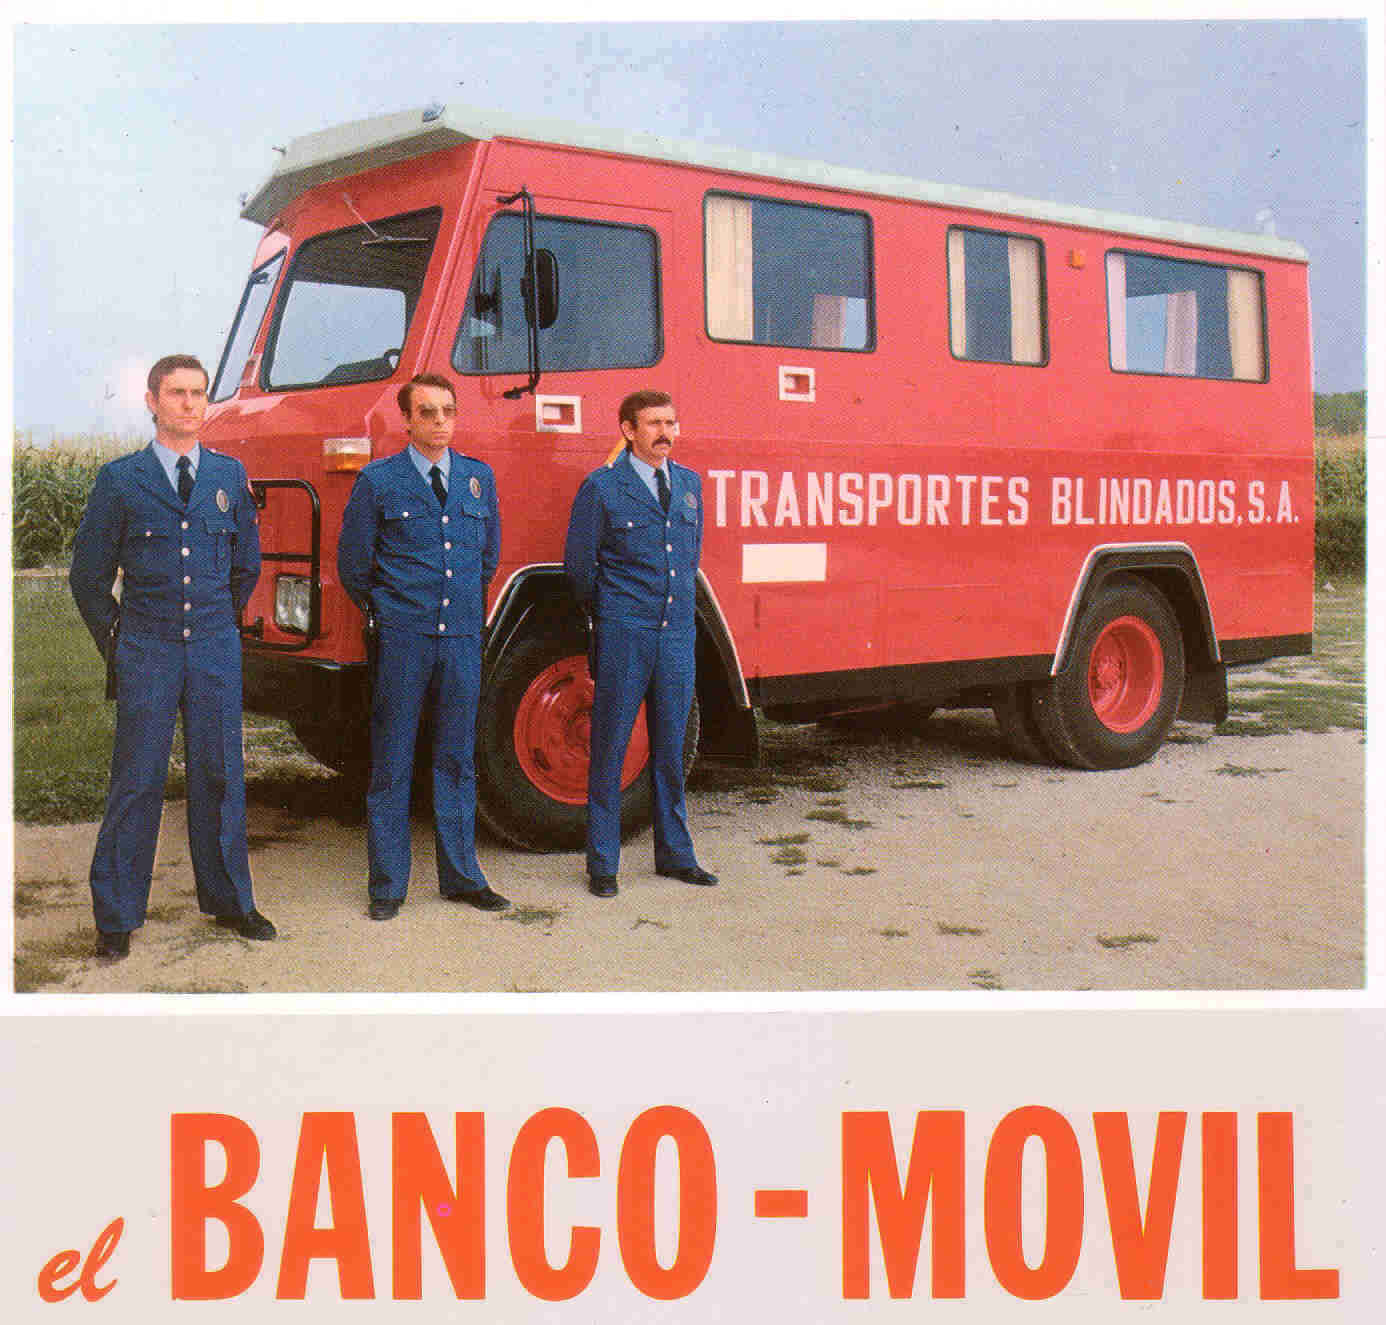 BANCO MOVIL TRANSPORTES BLINDADOS